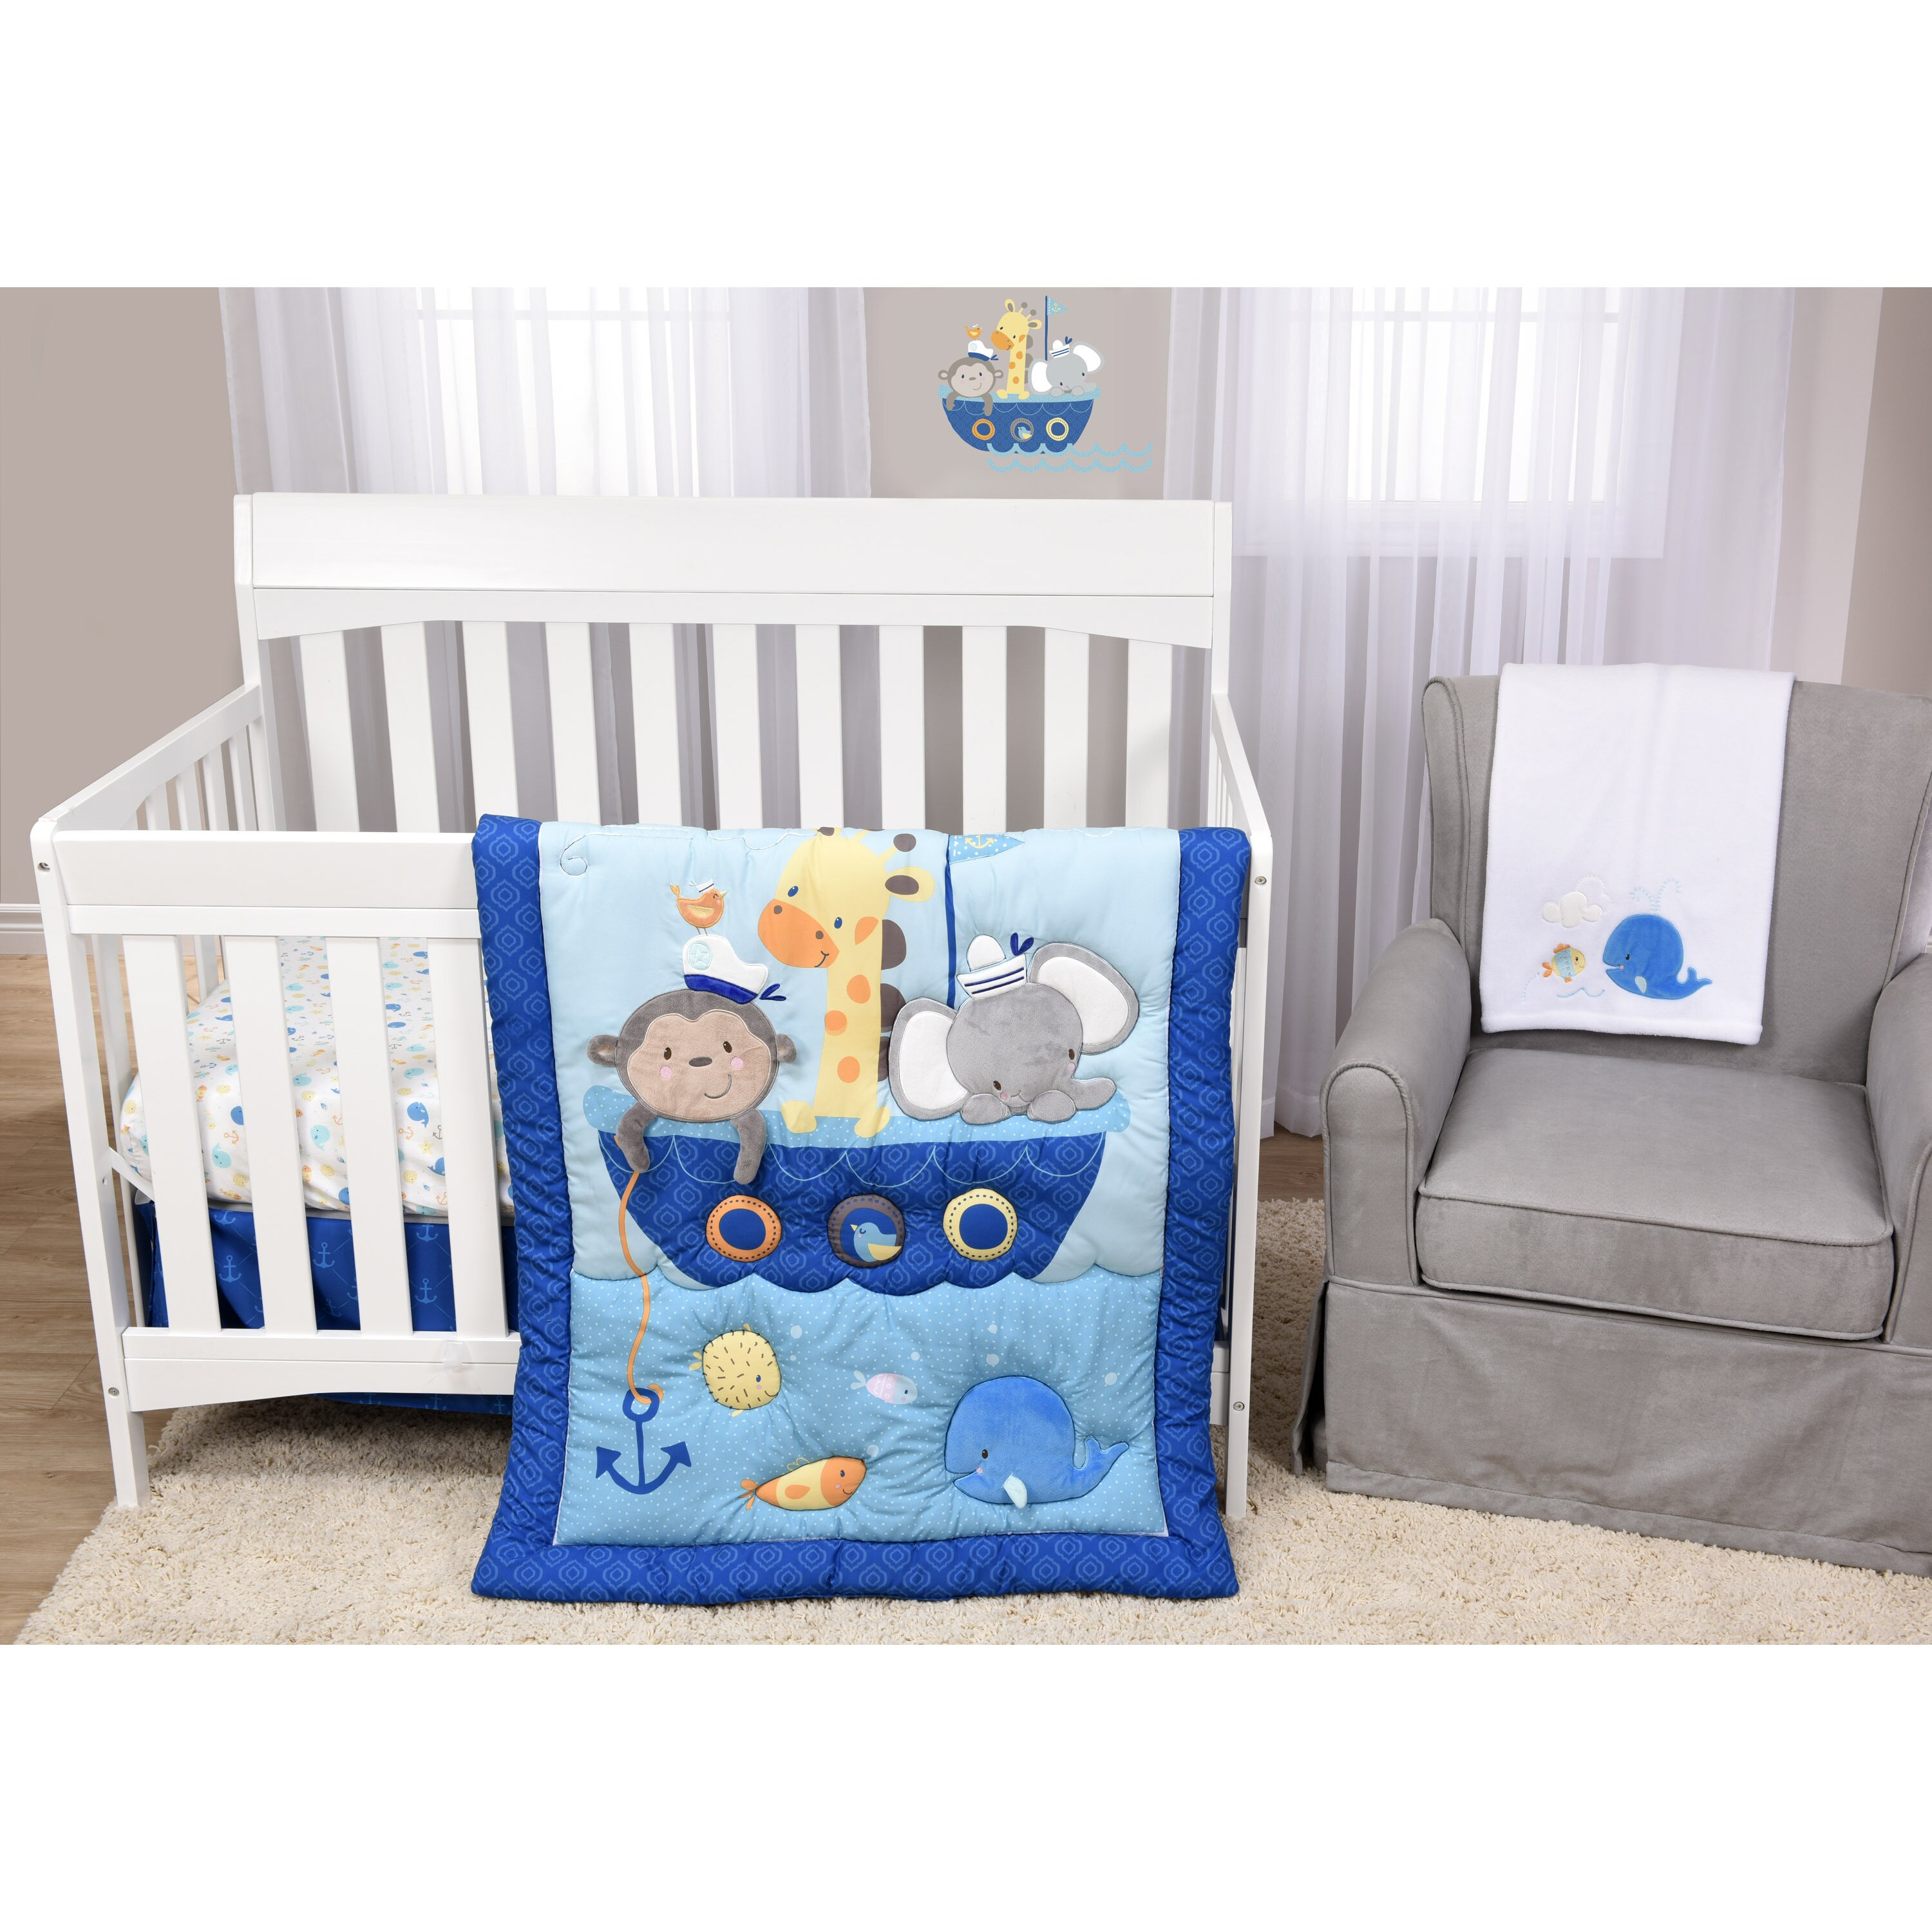 Harriet Bee Rollins 3 Piece Crib Bedding Set: Baby's First Ahoy There 5 Piece Crib Bedding Set & Reviews